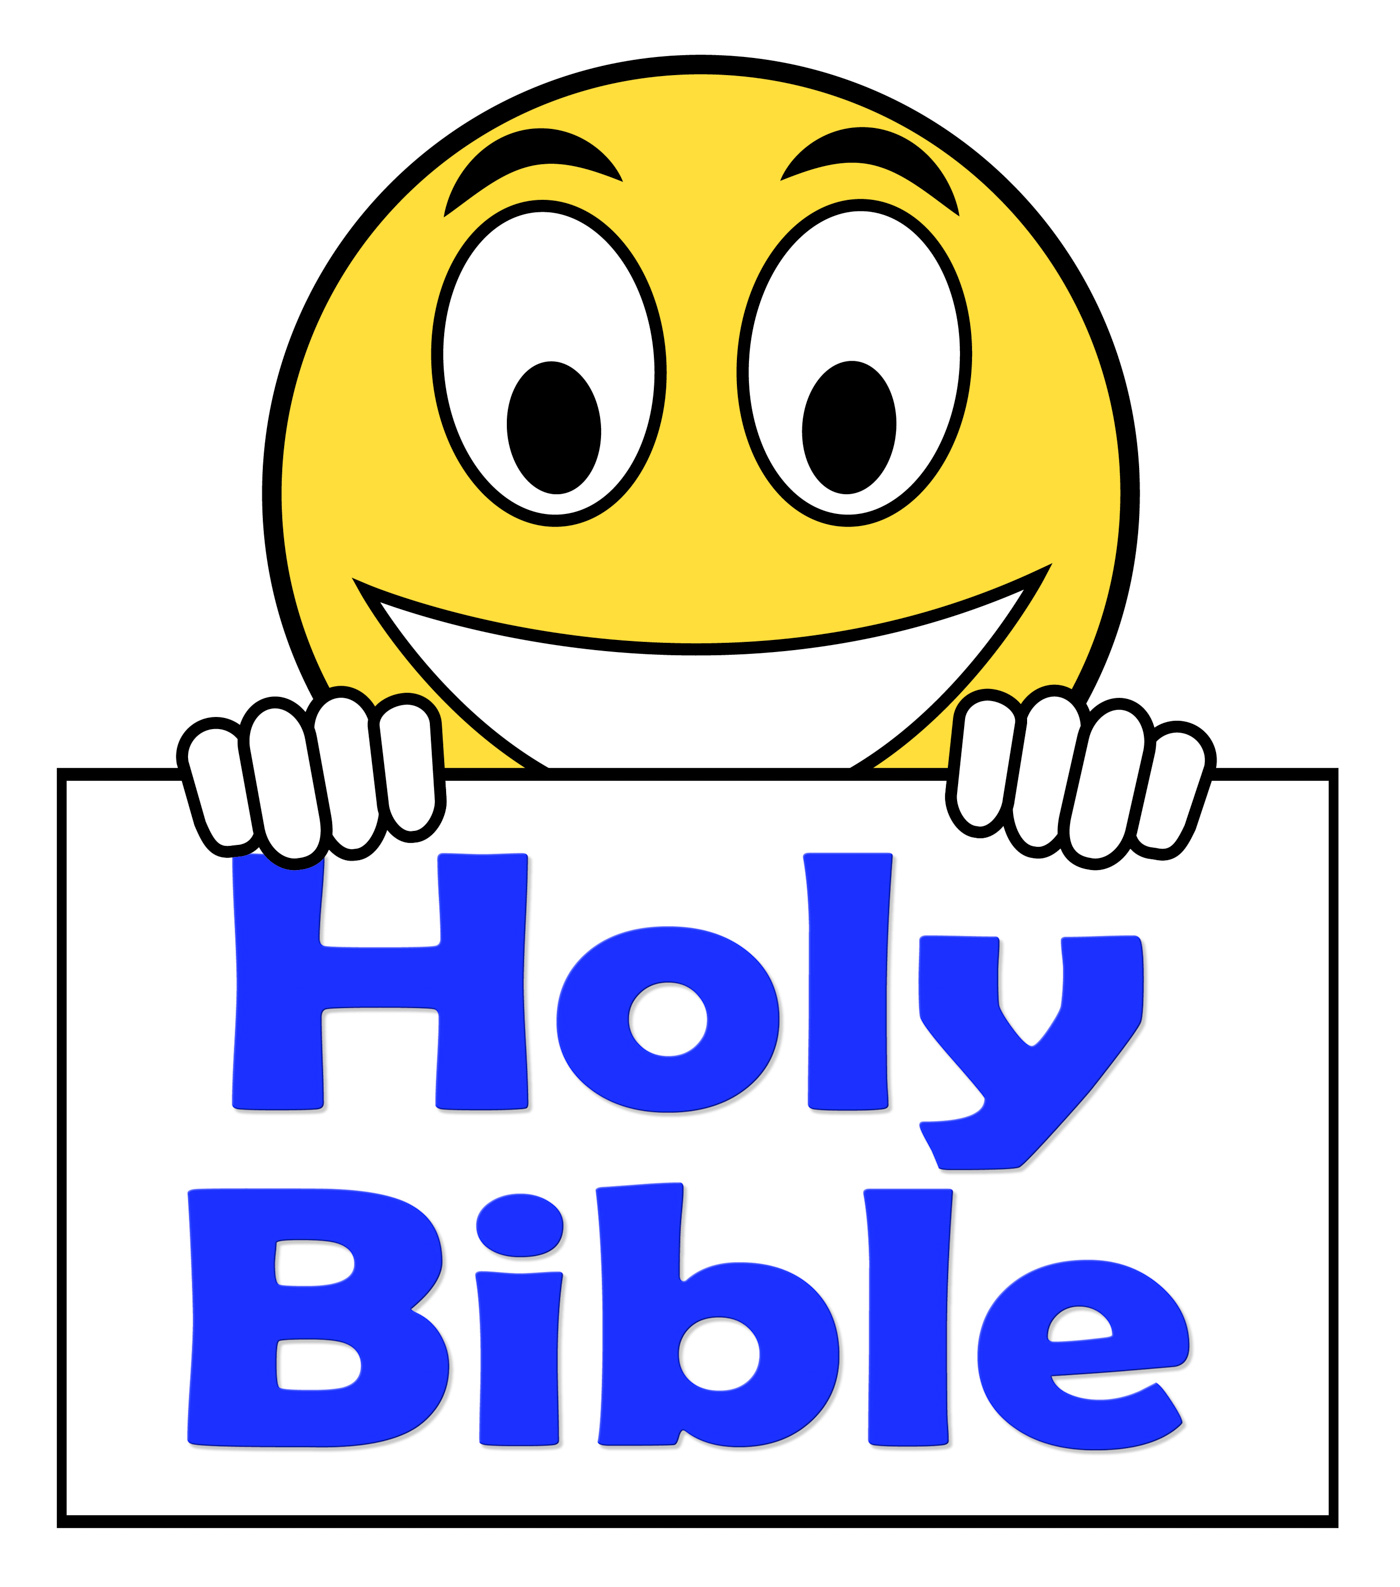 Holy Bible On Sign Shows Religious Book, Belief, Believe, Believing, Bible, HQ Photo